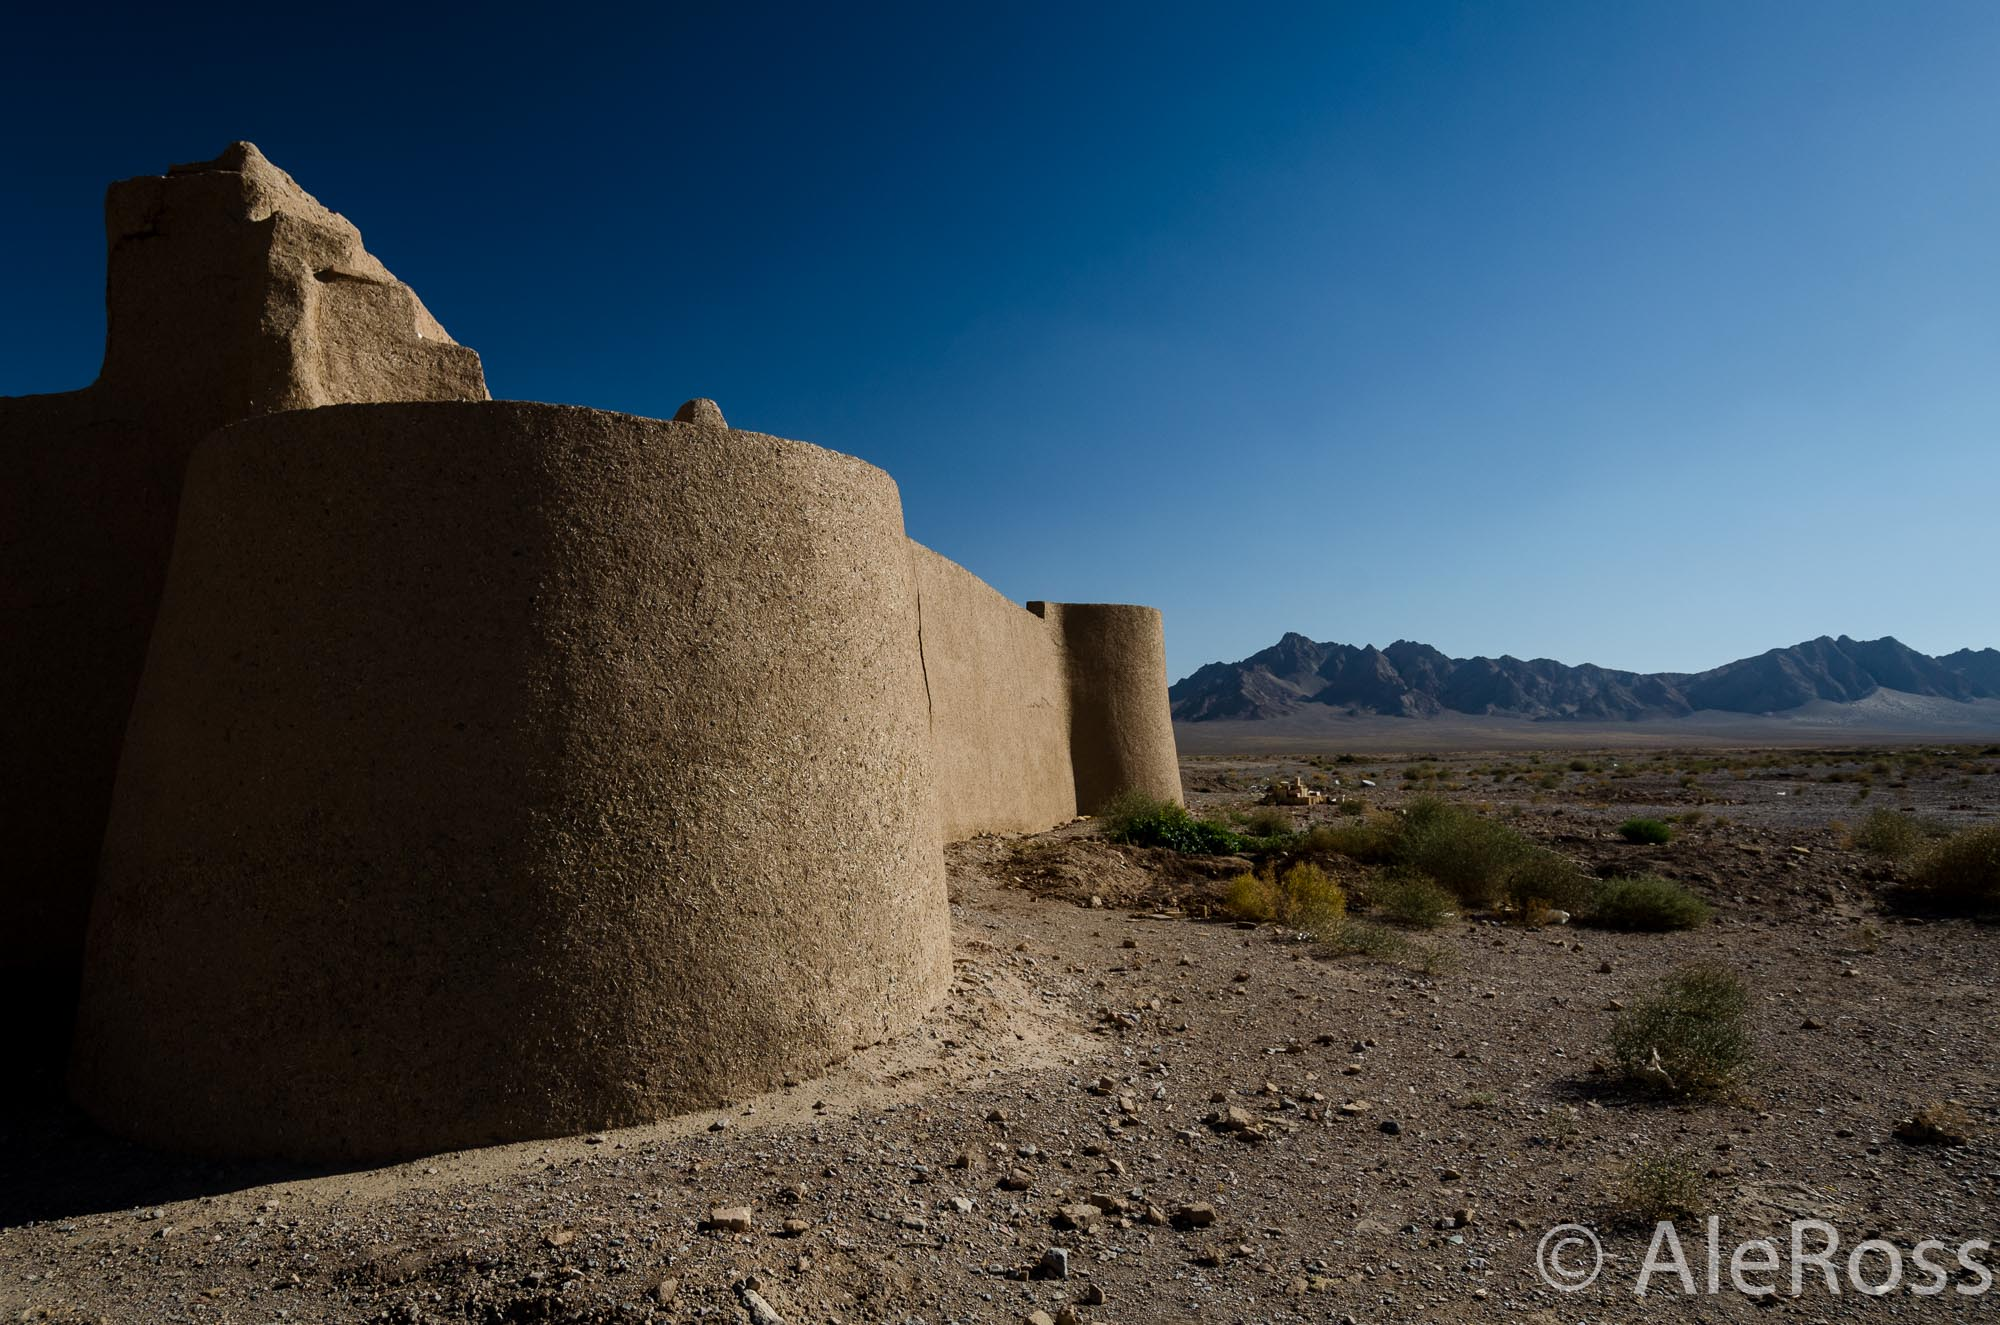 Iran Caravanserais in the Middle of the Desert